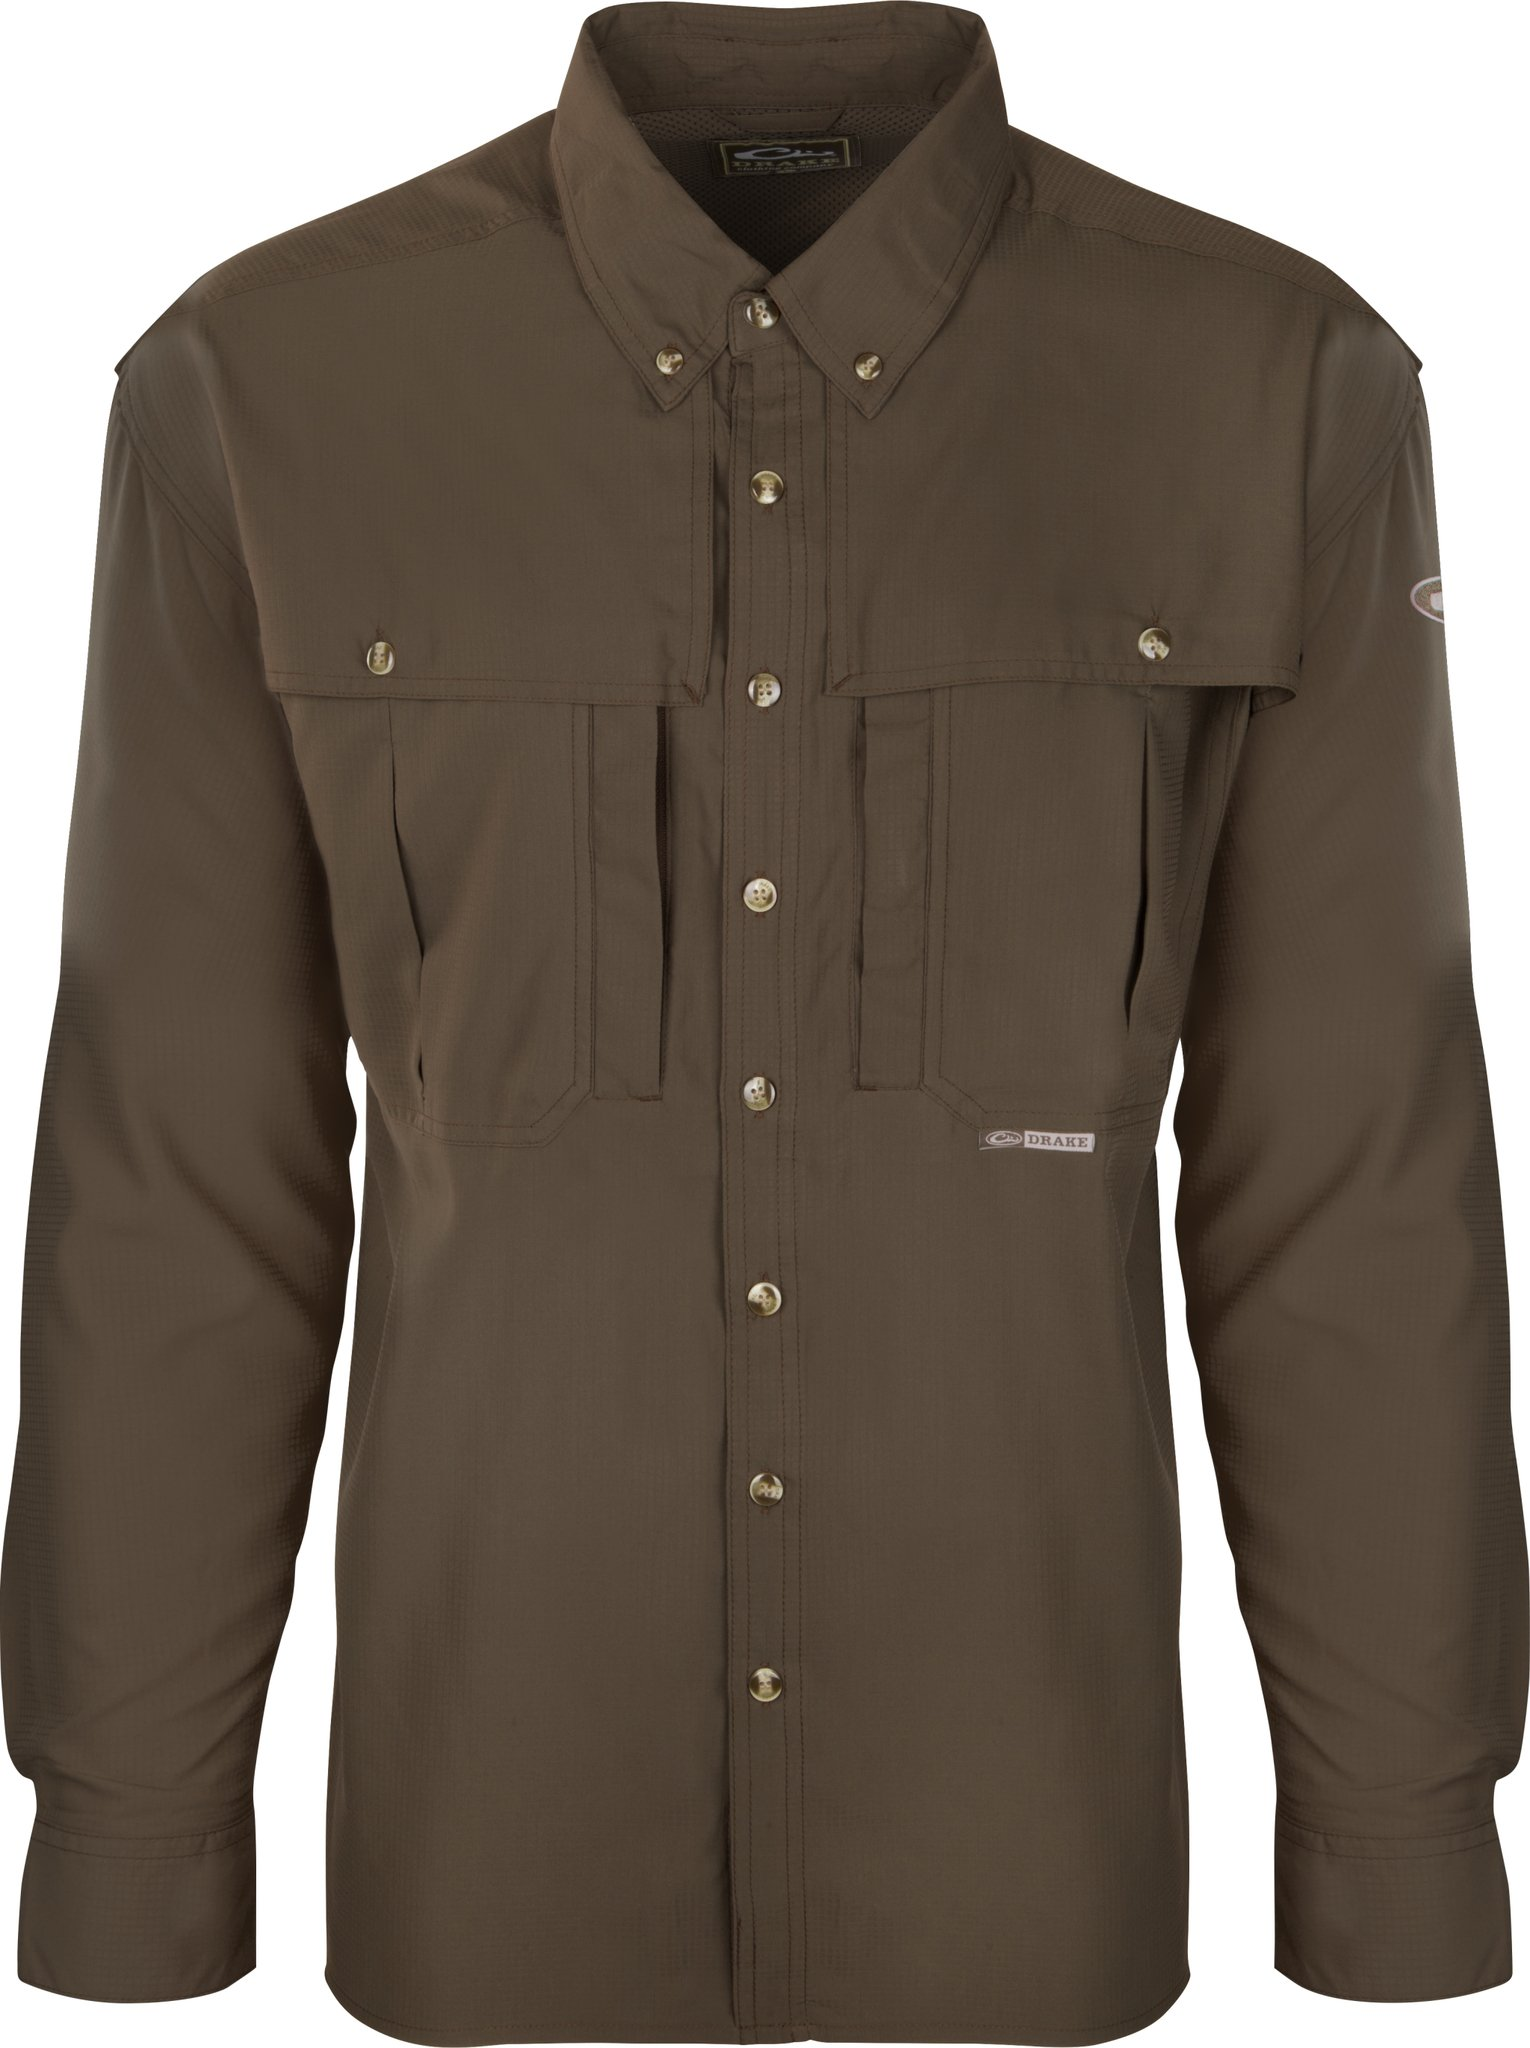 Drake Flyweight Wingshooter's Shirt L/S (Olive, Large) by Drake